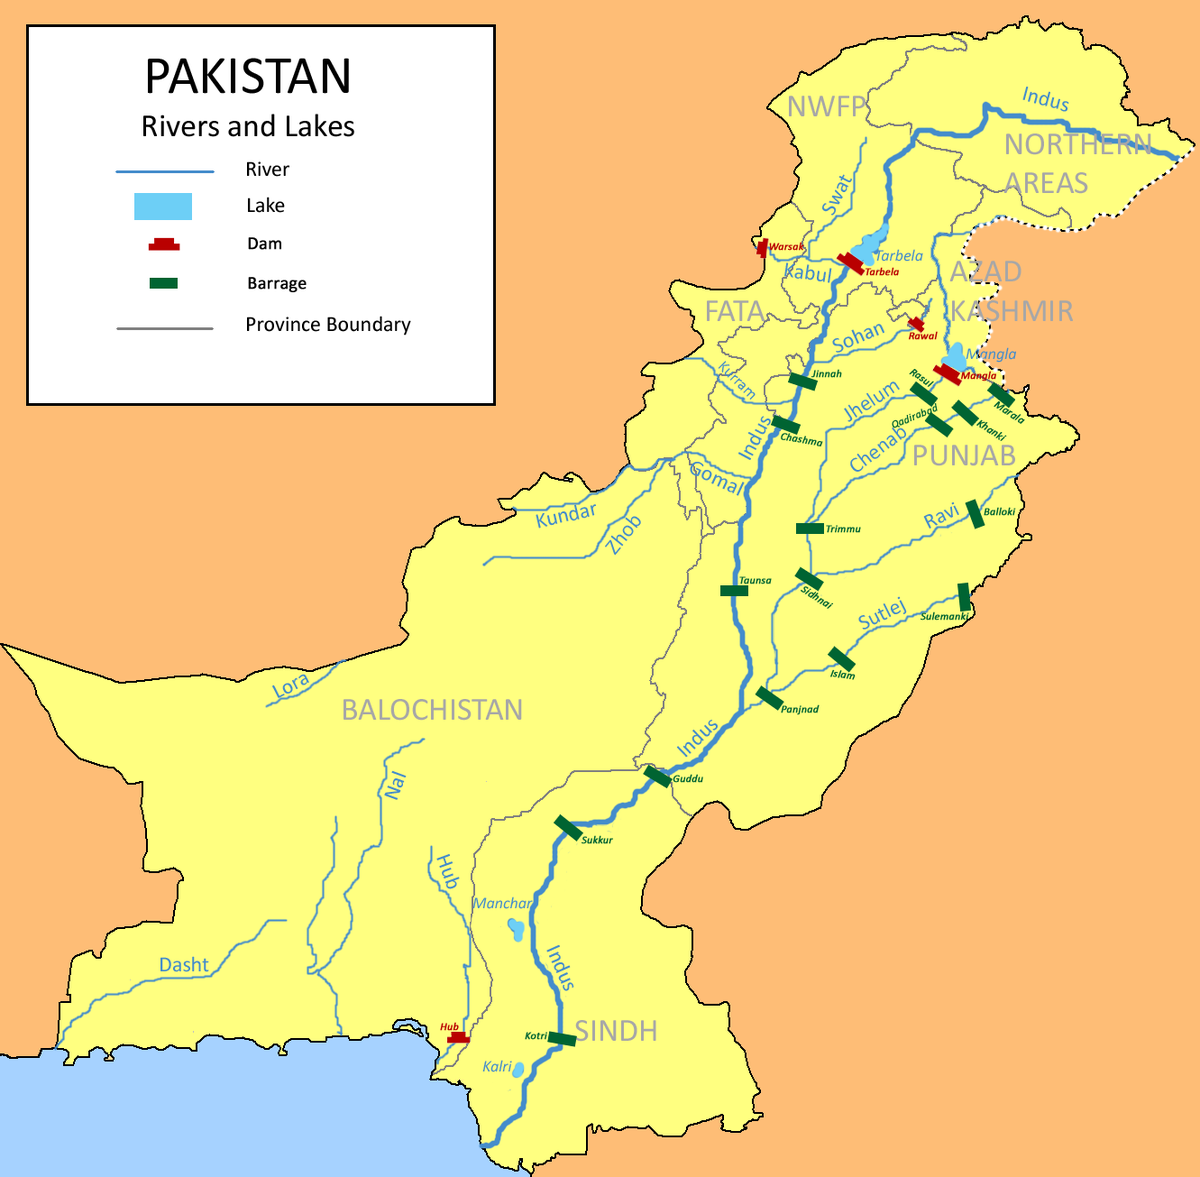 List of rivers of Pakistan